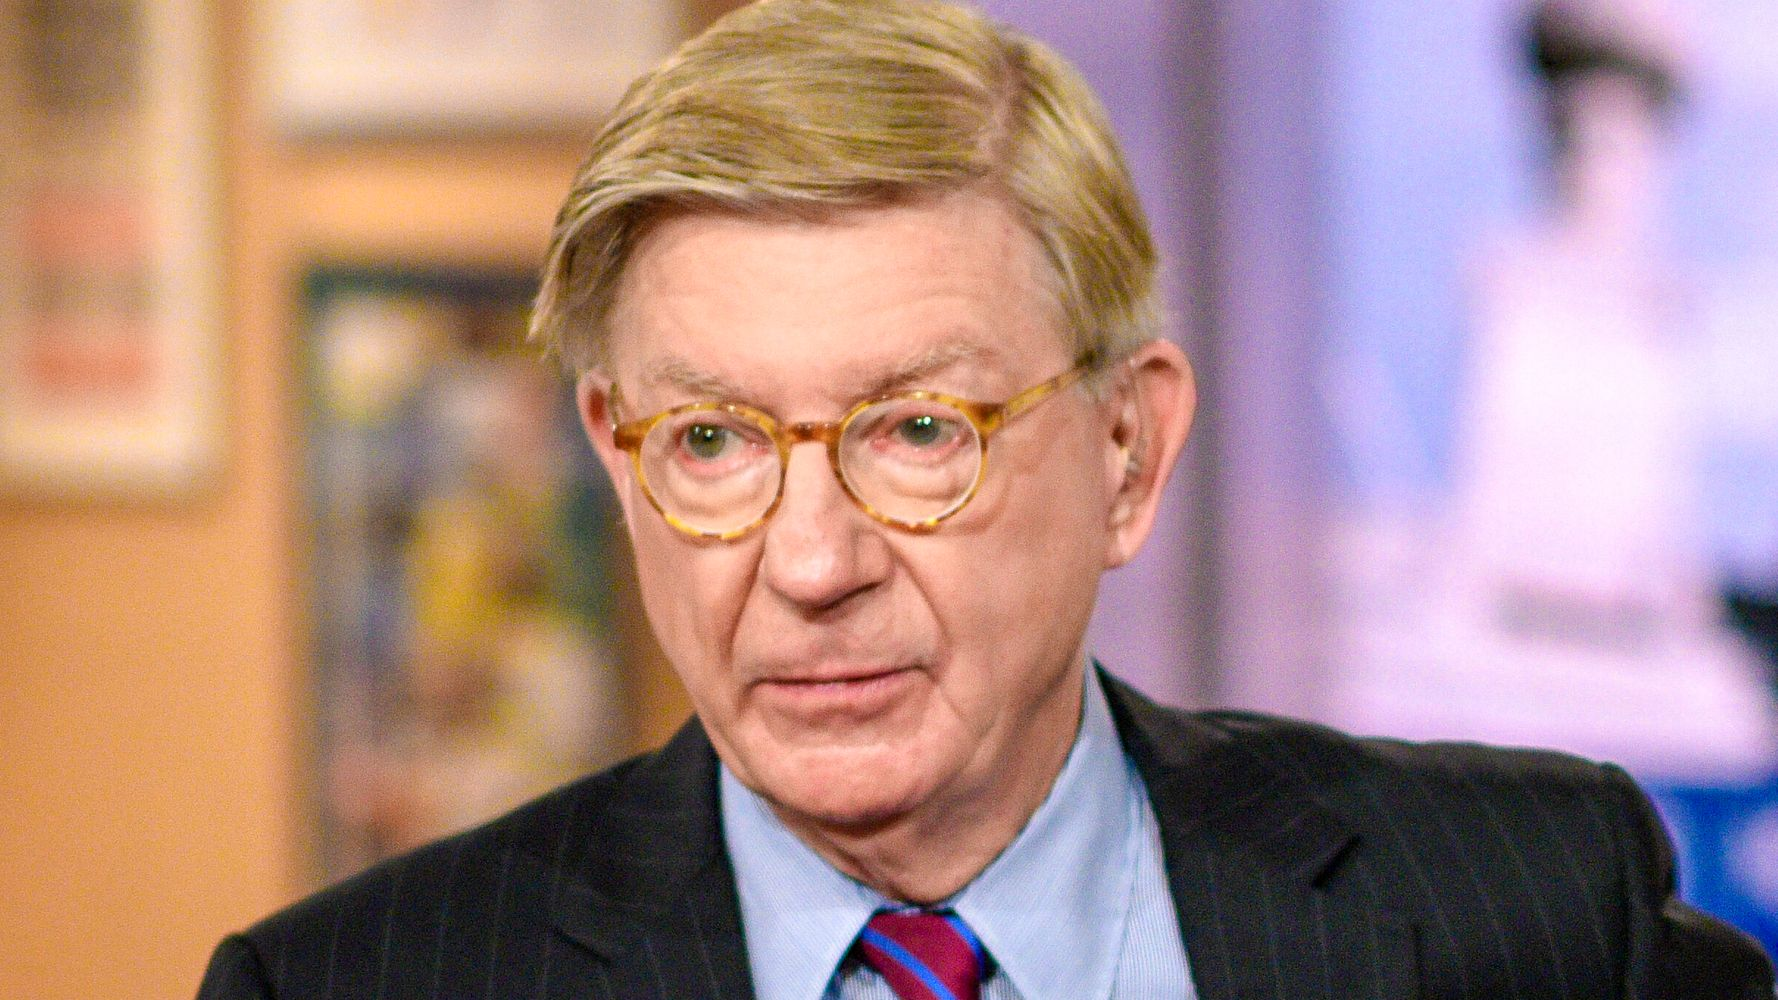 Conservative Icon George Will Urges November Sweep: Vote Out Trump, All GOP Enablers